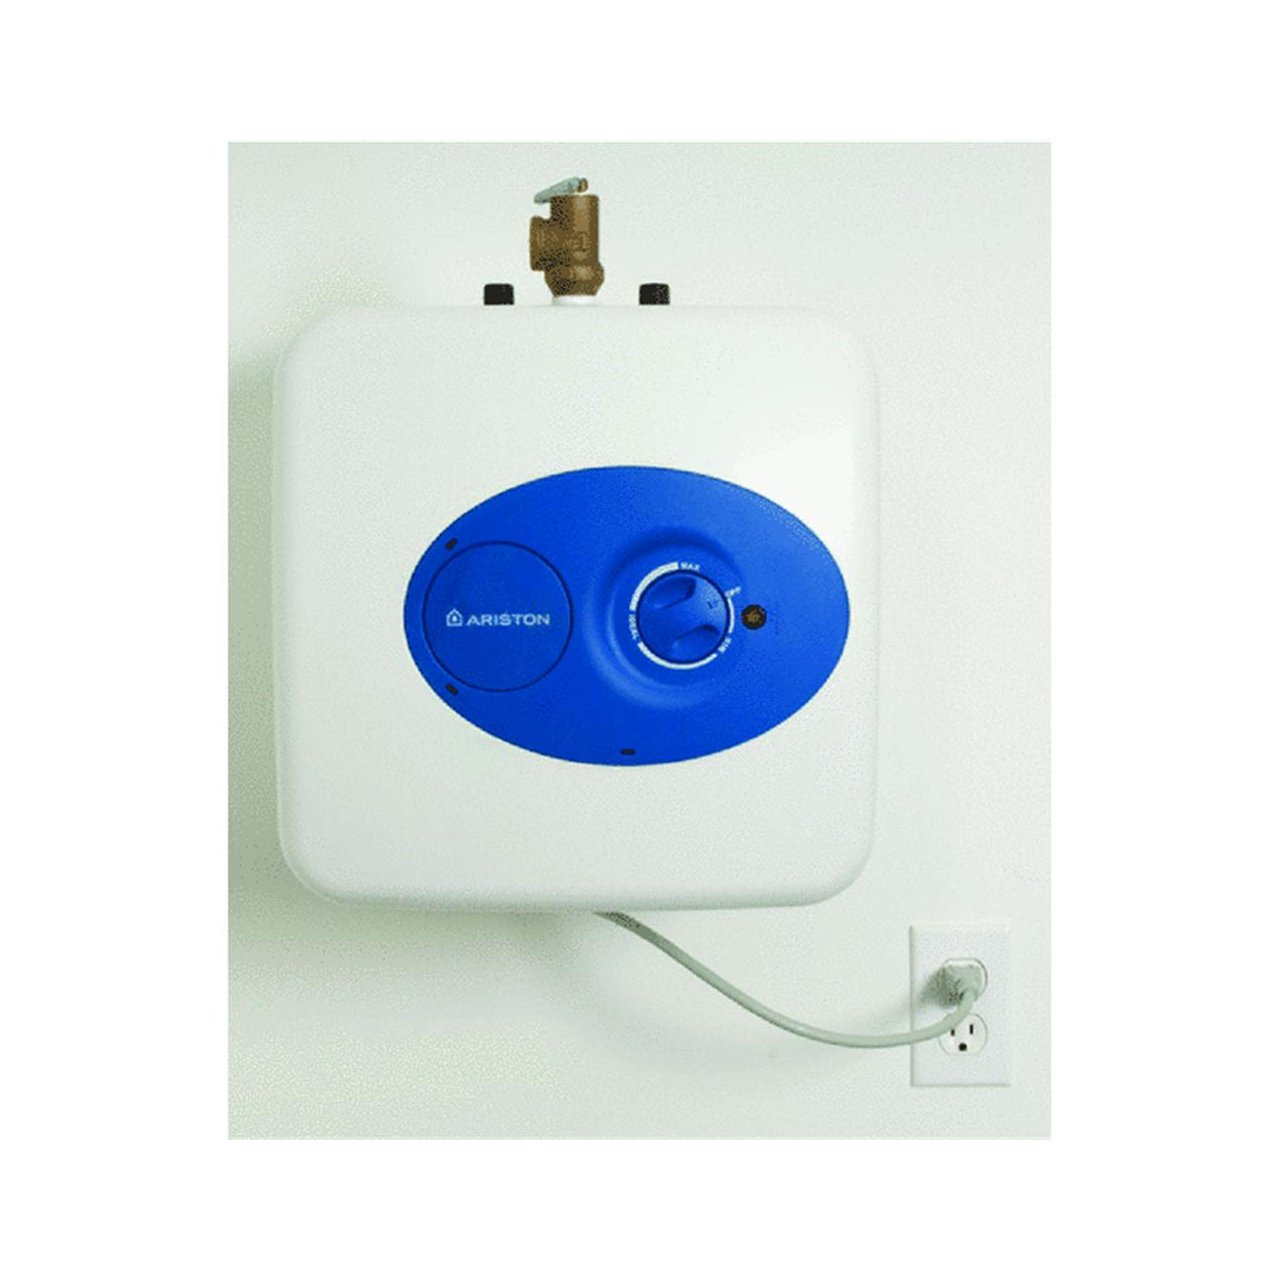 Ariston Gl4s Electric Mini Tank Water Heater Pou How To Change The Temperature On Your